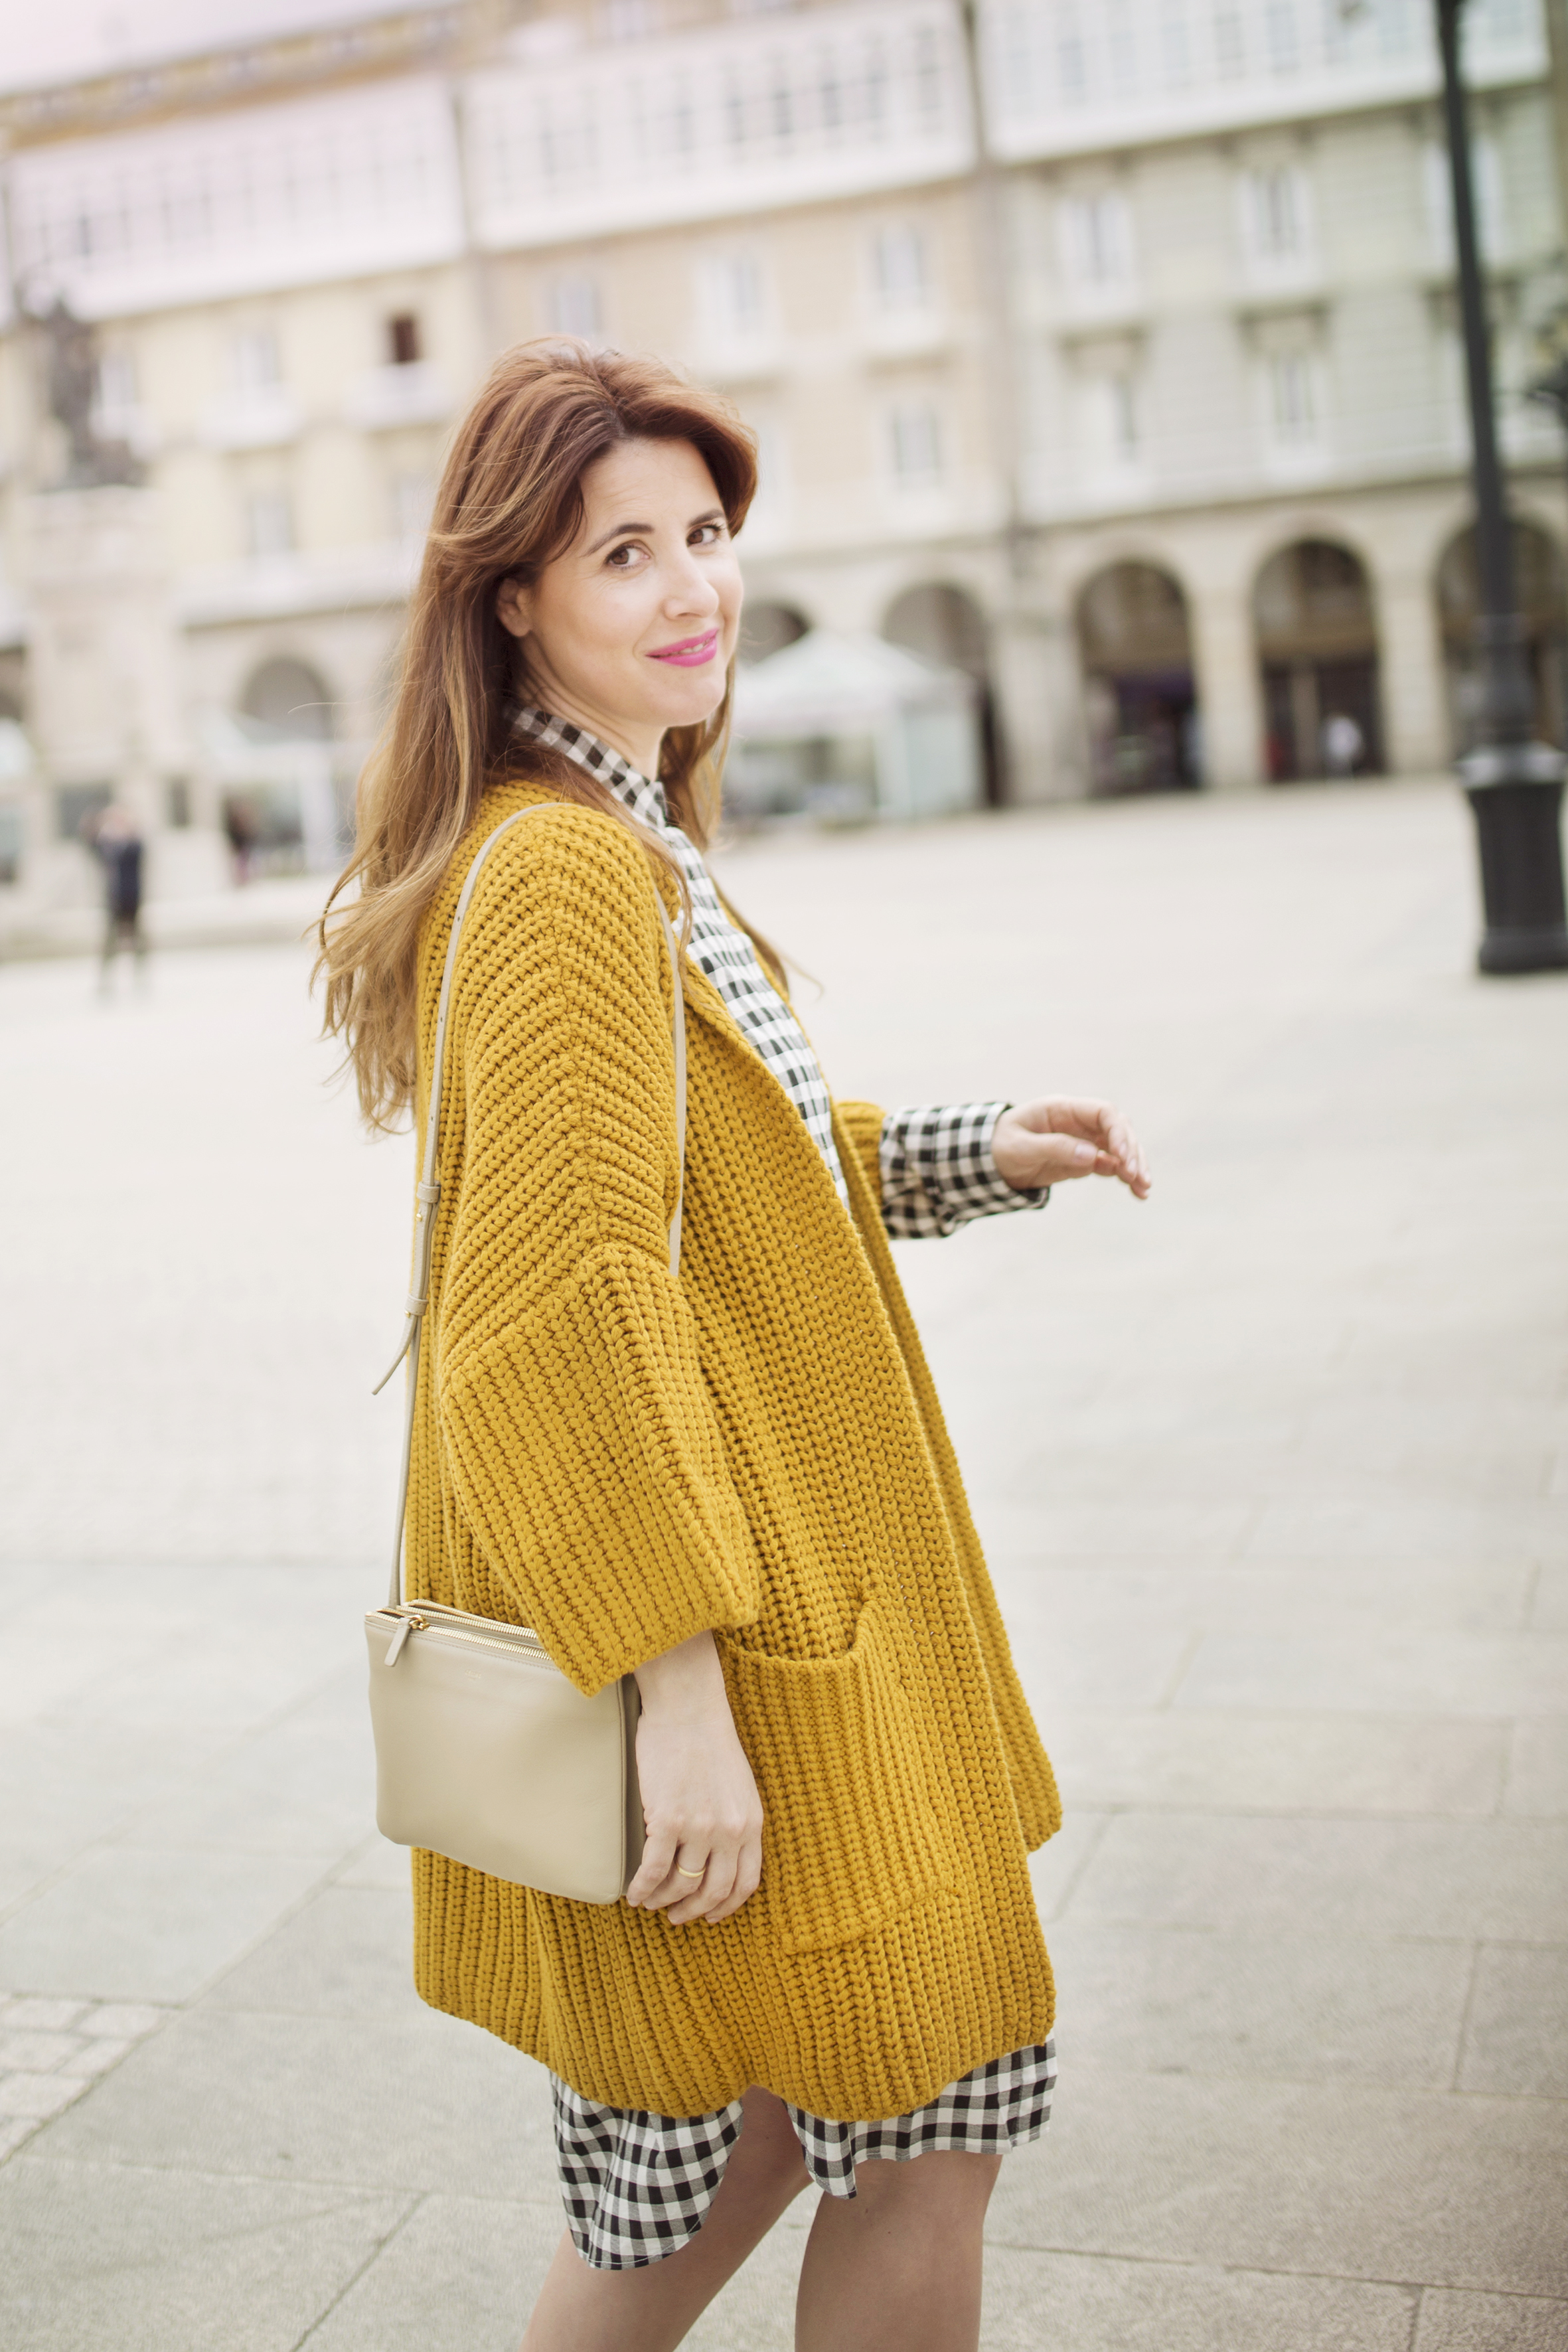 fashion-coruña- streetstyle- blogger -descalzaporelparque-dress shirt- cèline bag-trio bag-- cuadros- lifestyle